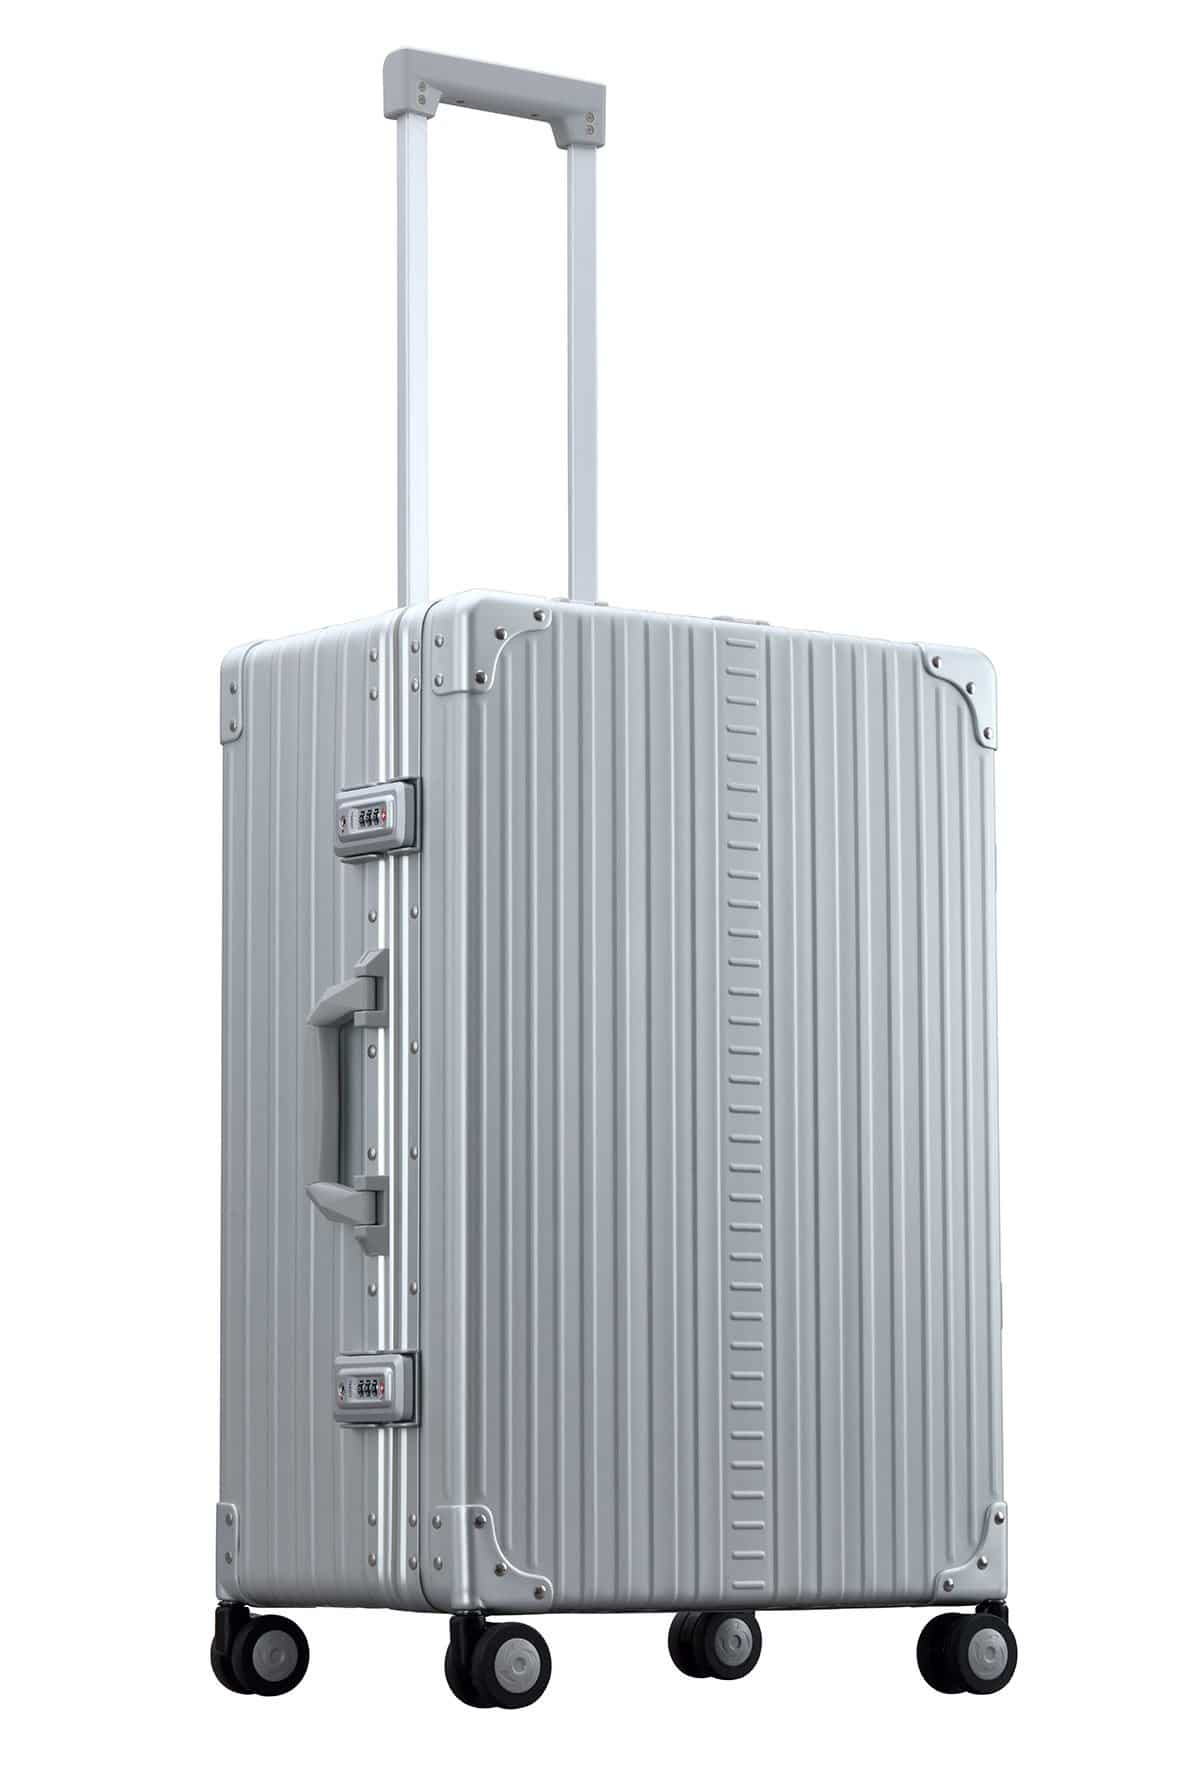 26 inch Aluminum suitcase with garment bag trunk style